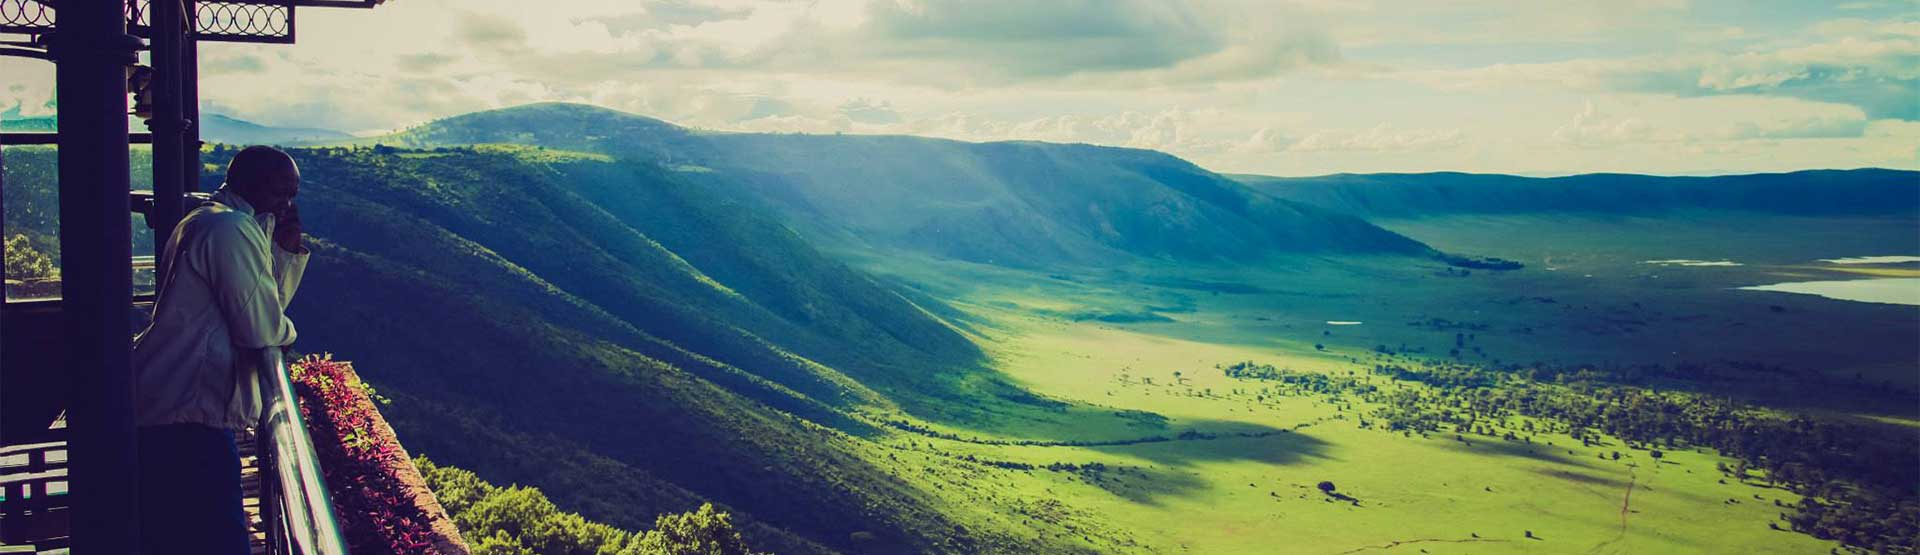 https://www.kilimanjaronaturetours.com/wp-content/uploads/2014/06/ngorongoro.jpg